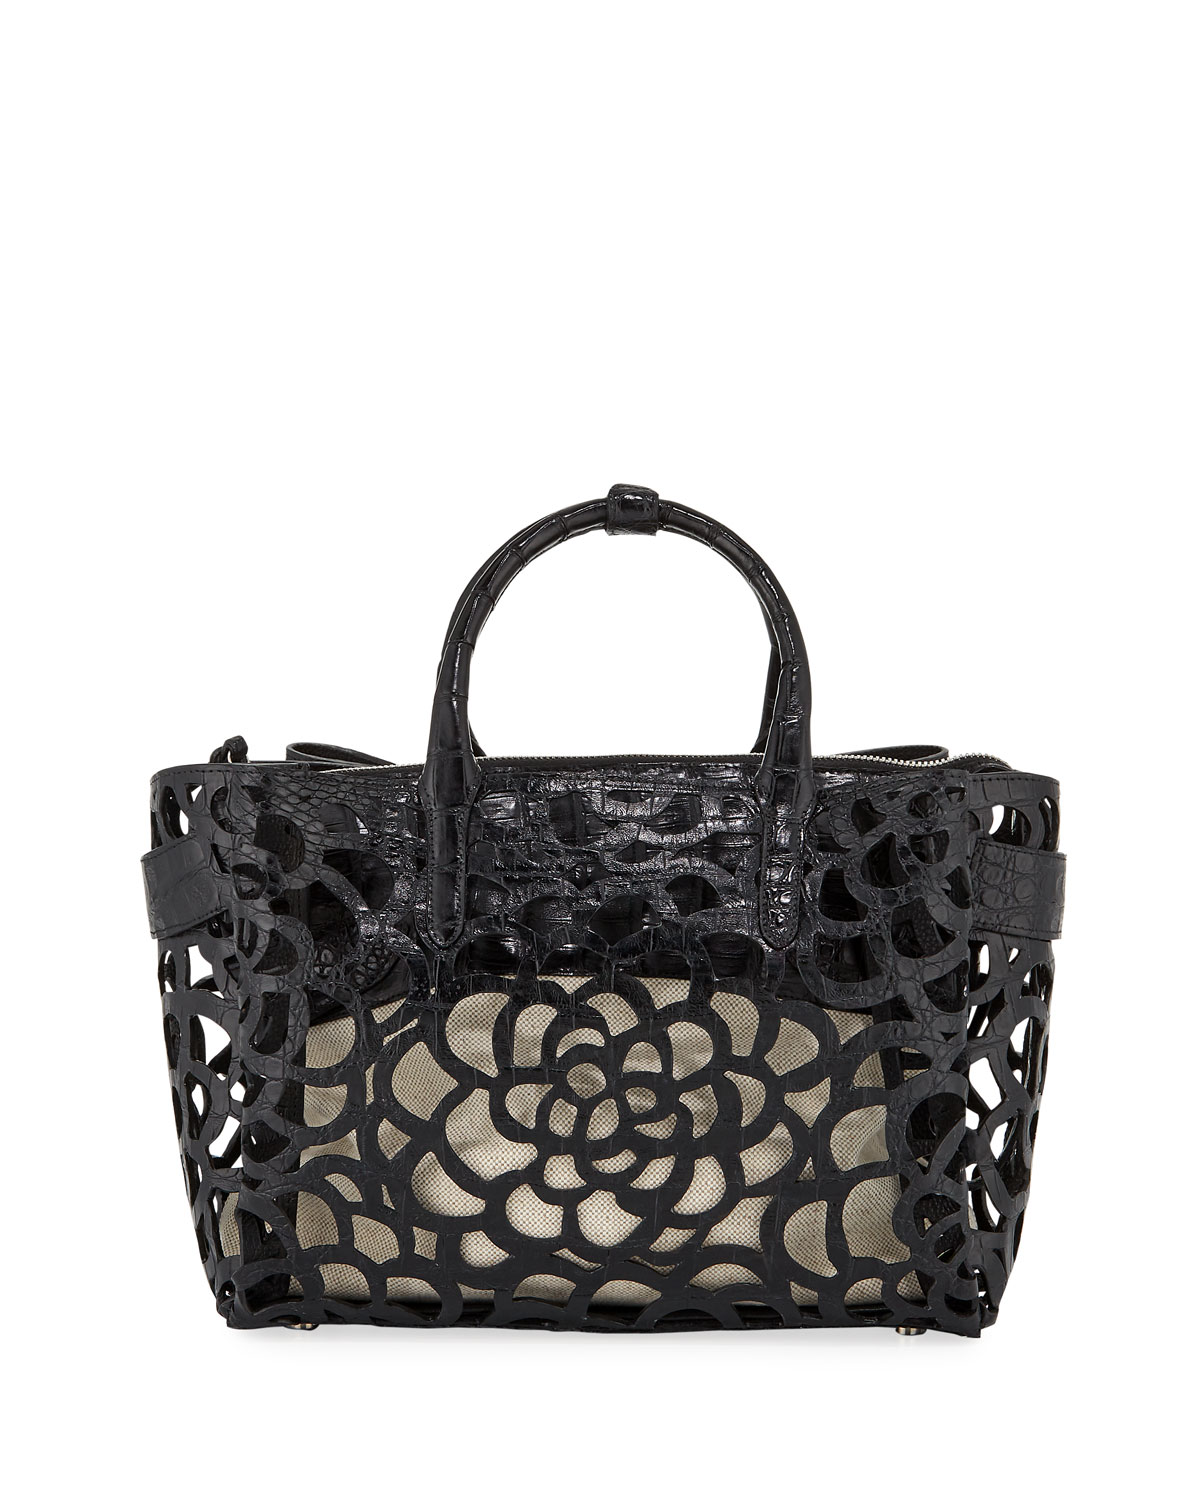 Nancy Gonzalez Limited-Edition Cristie Medium Camellia Croc Tote Bag